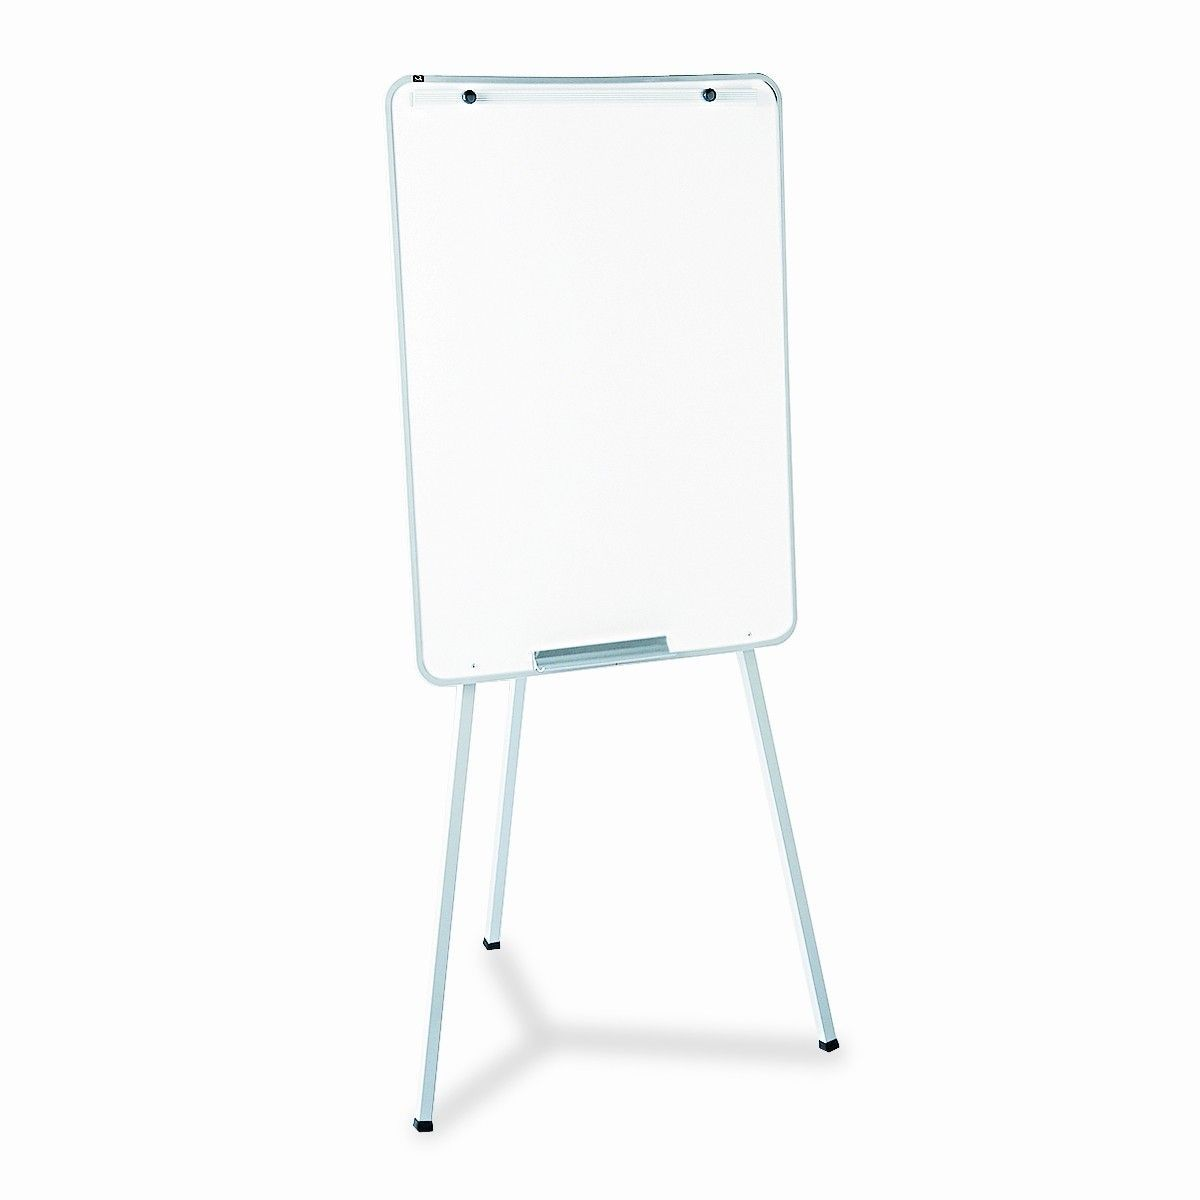 Oval Office Dry Erase Presentation Easel Whiteboard 6 With Images Dry Erase Easels For Sale Easel